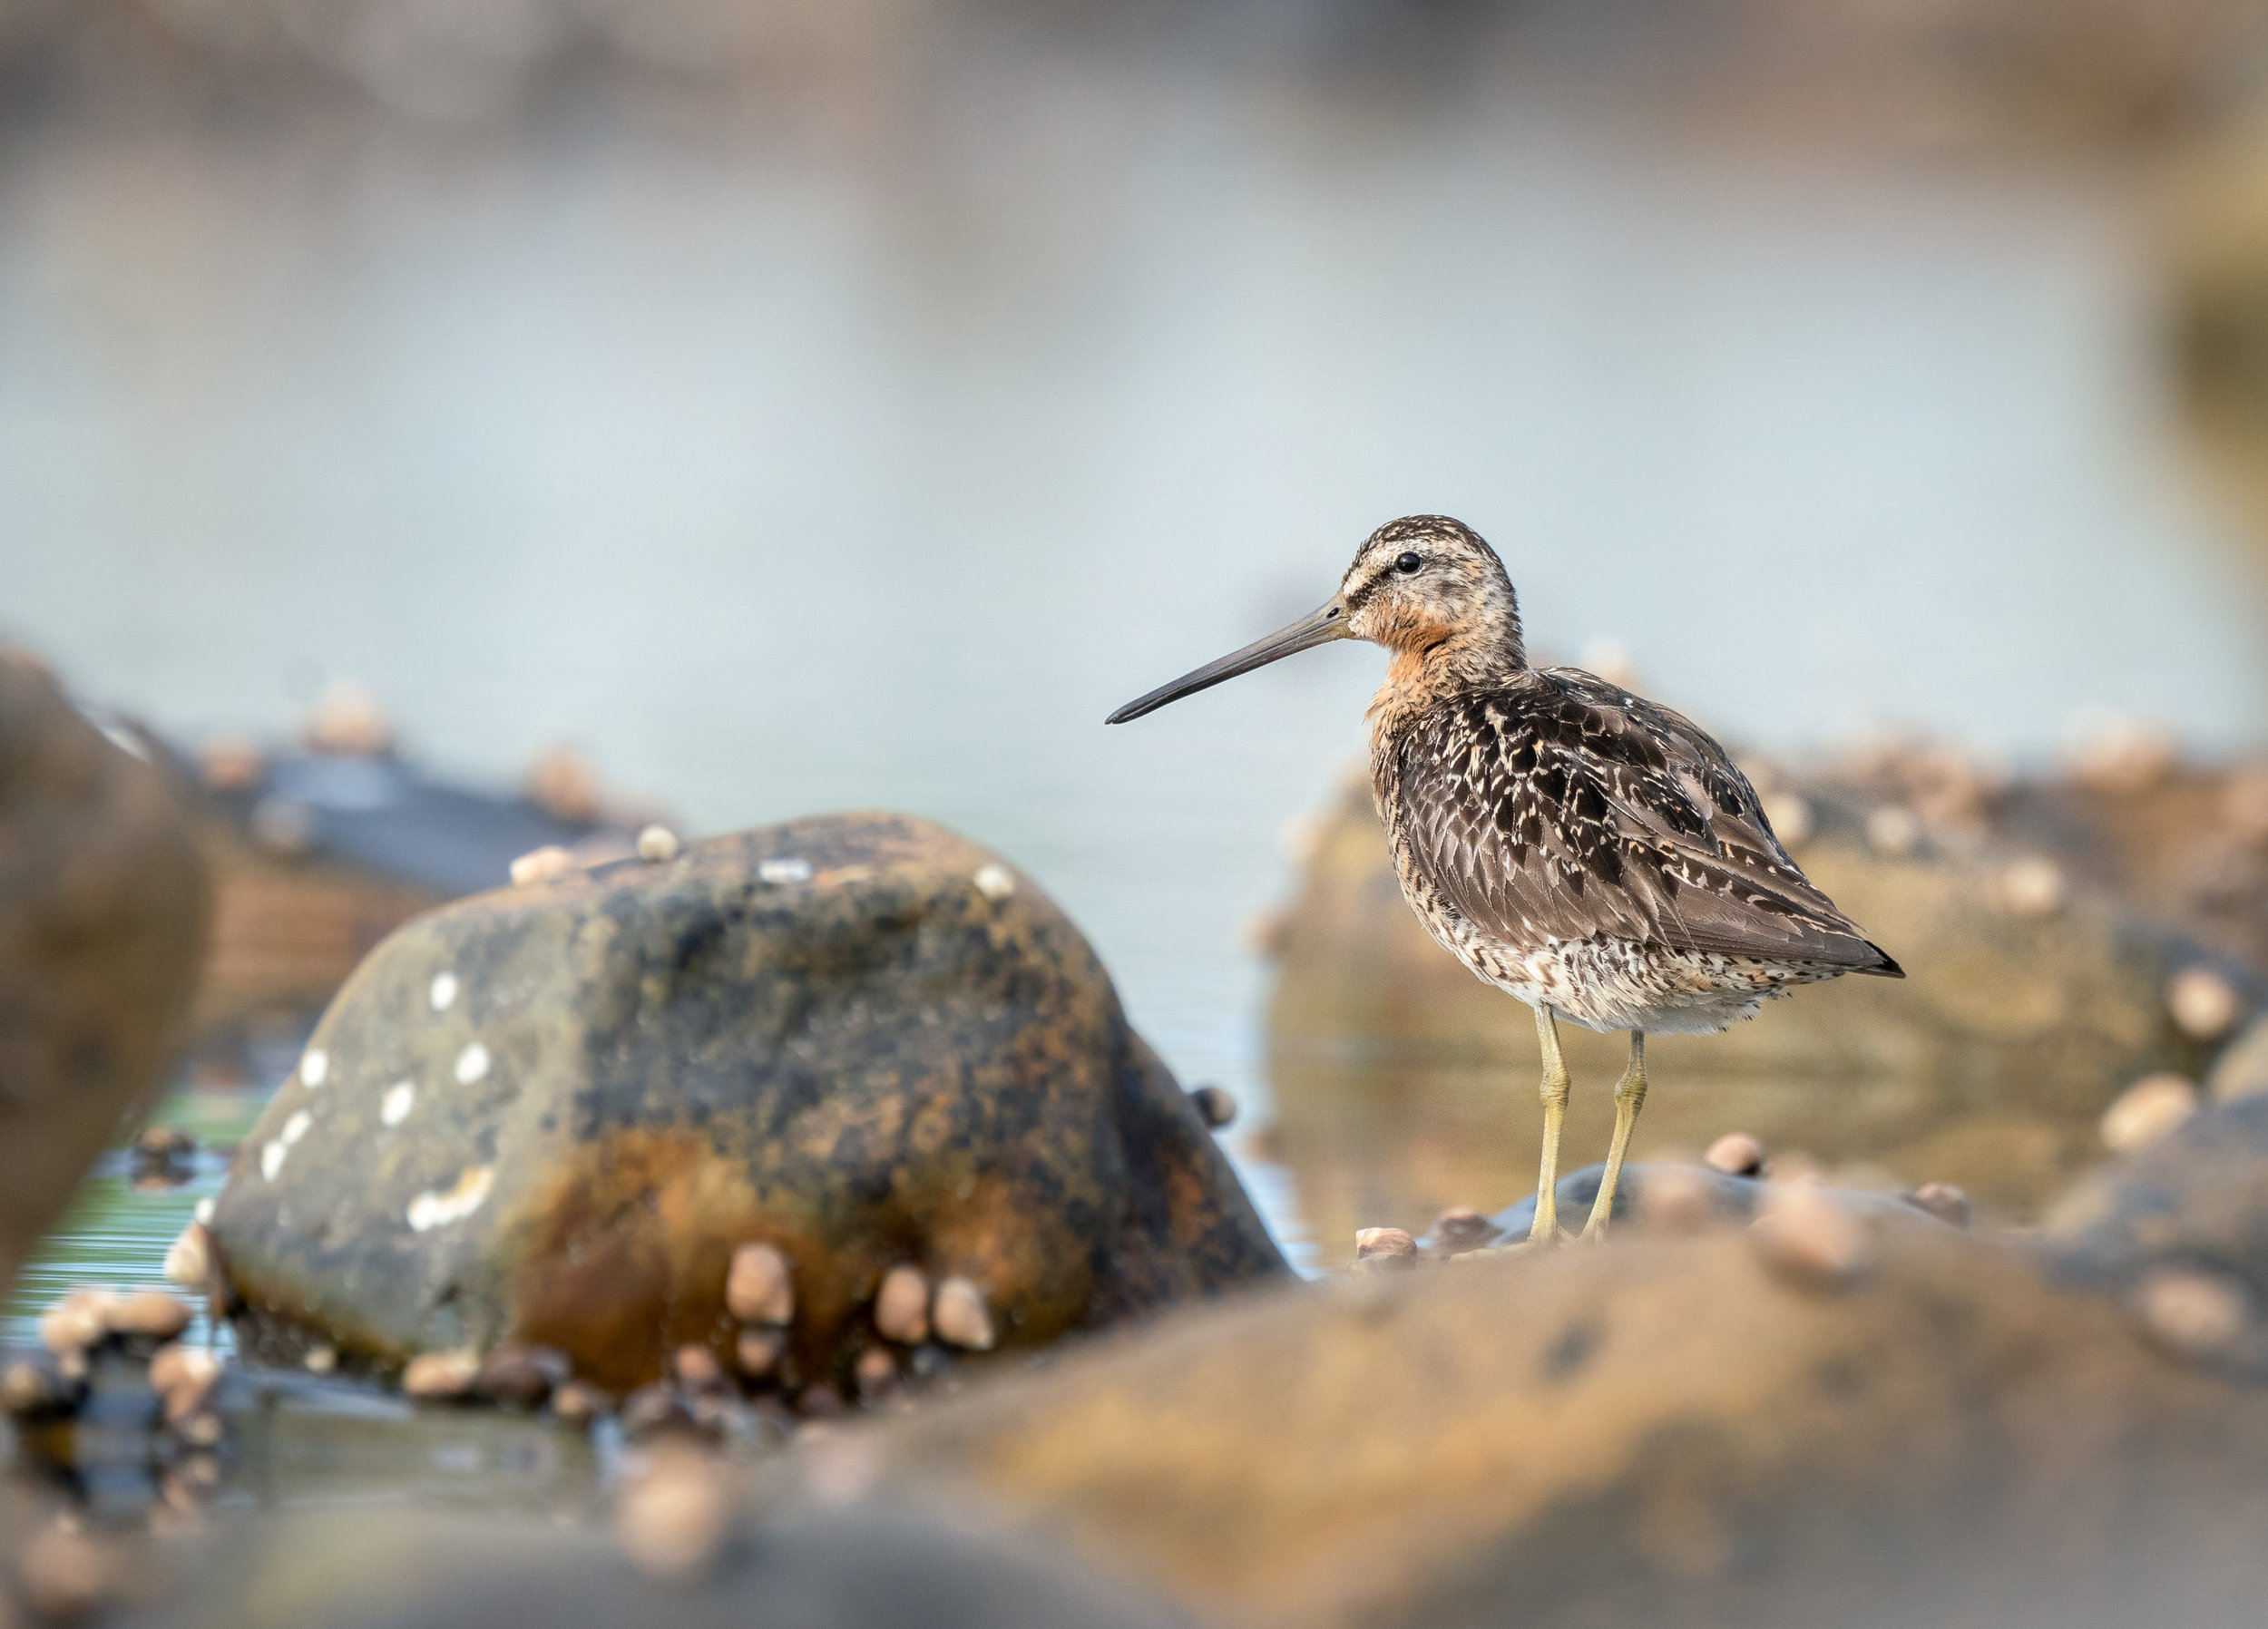 The most difficult to shoot - skittish, rocks and ponds near the tide